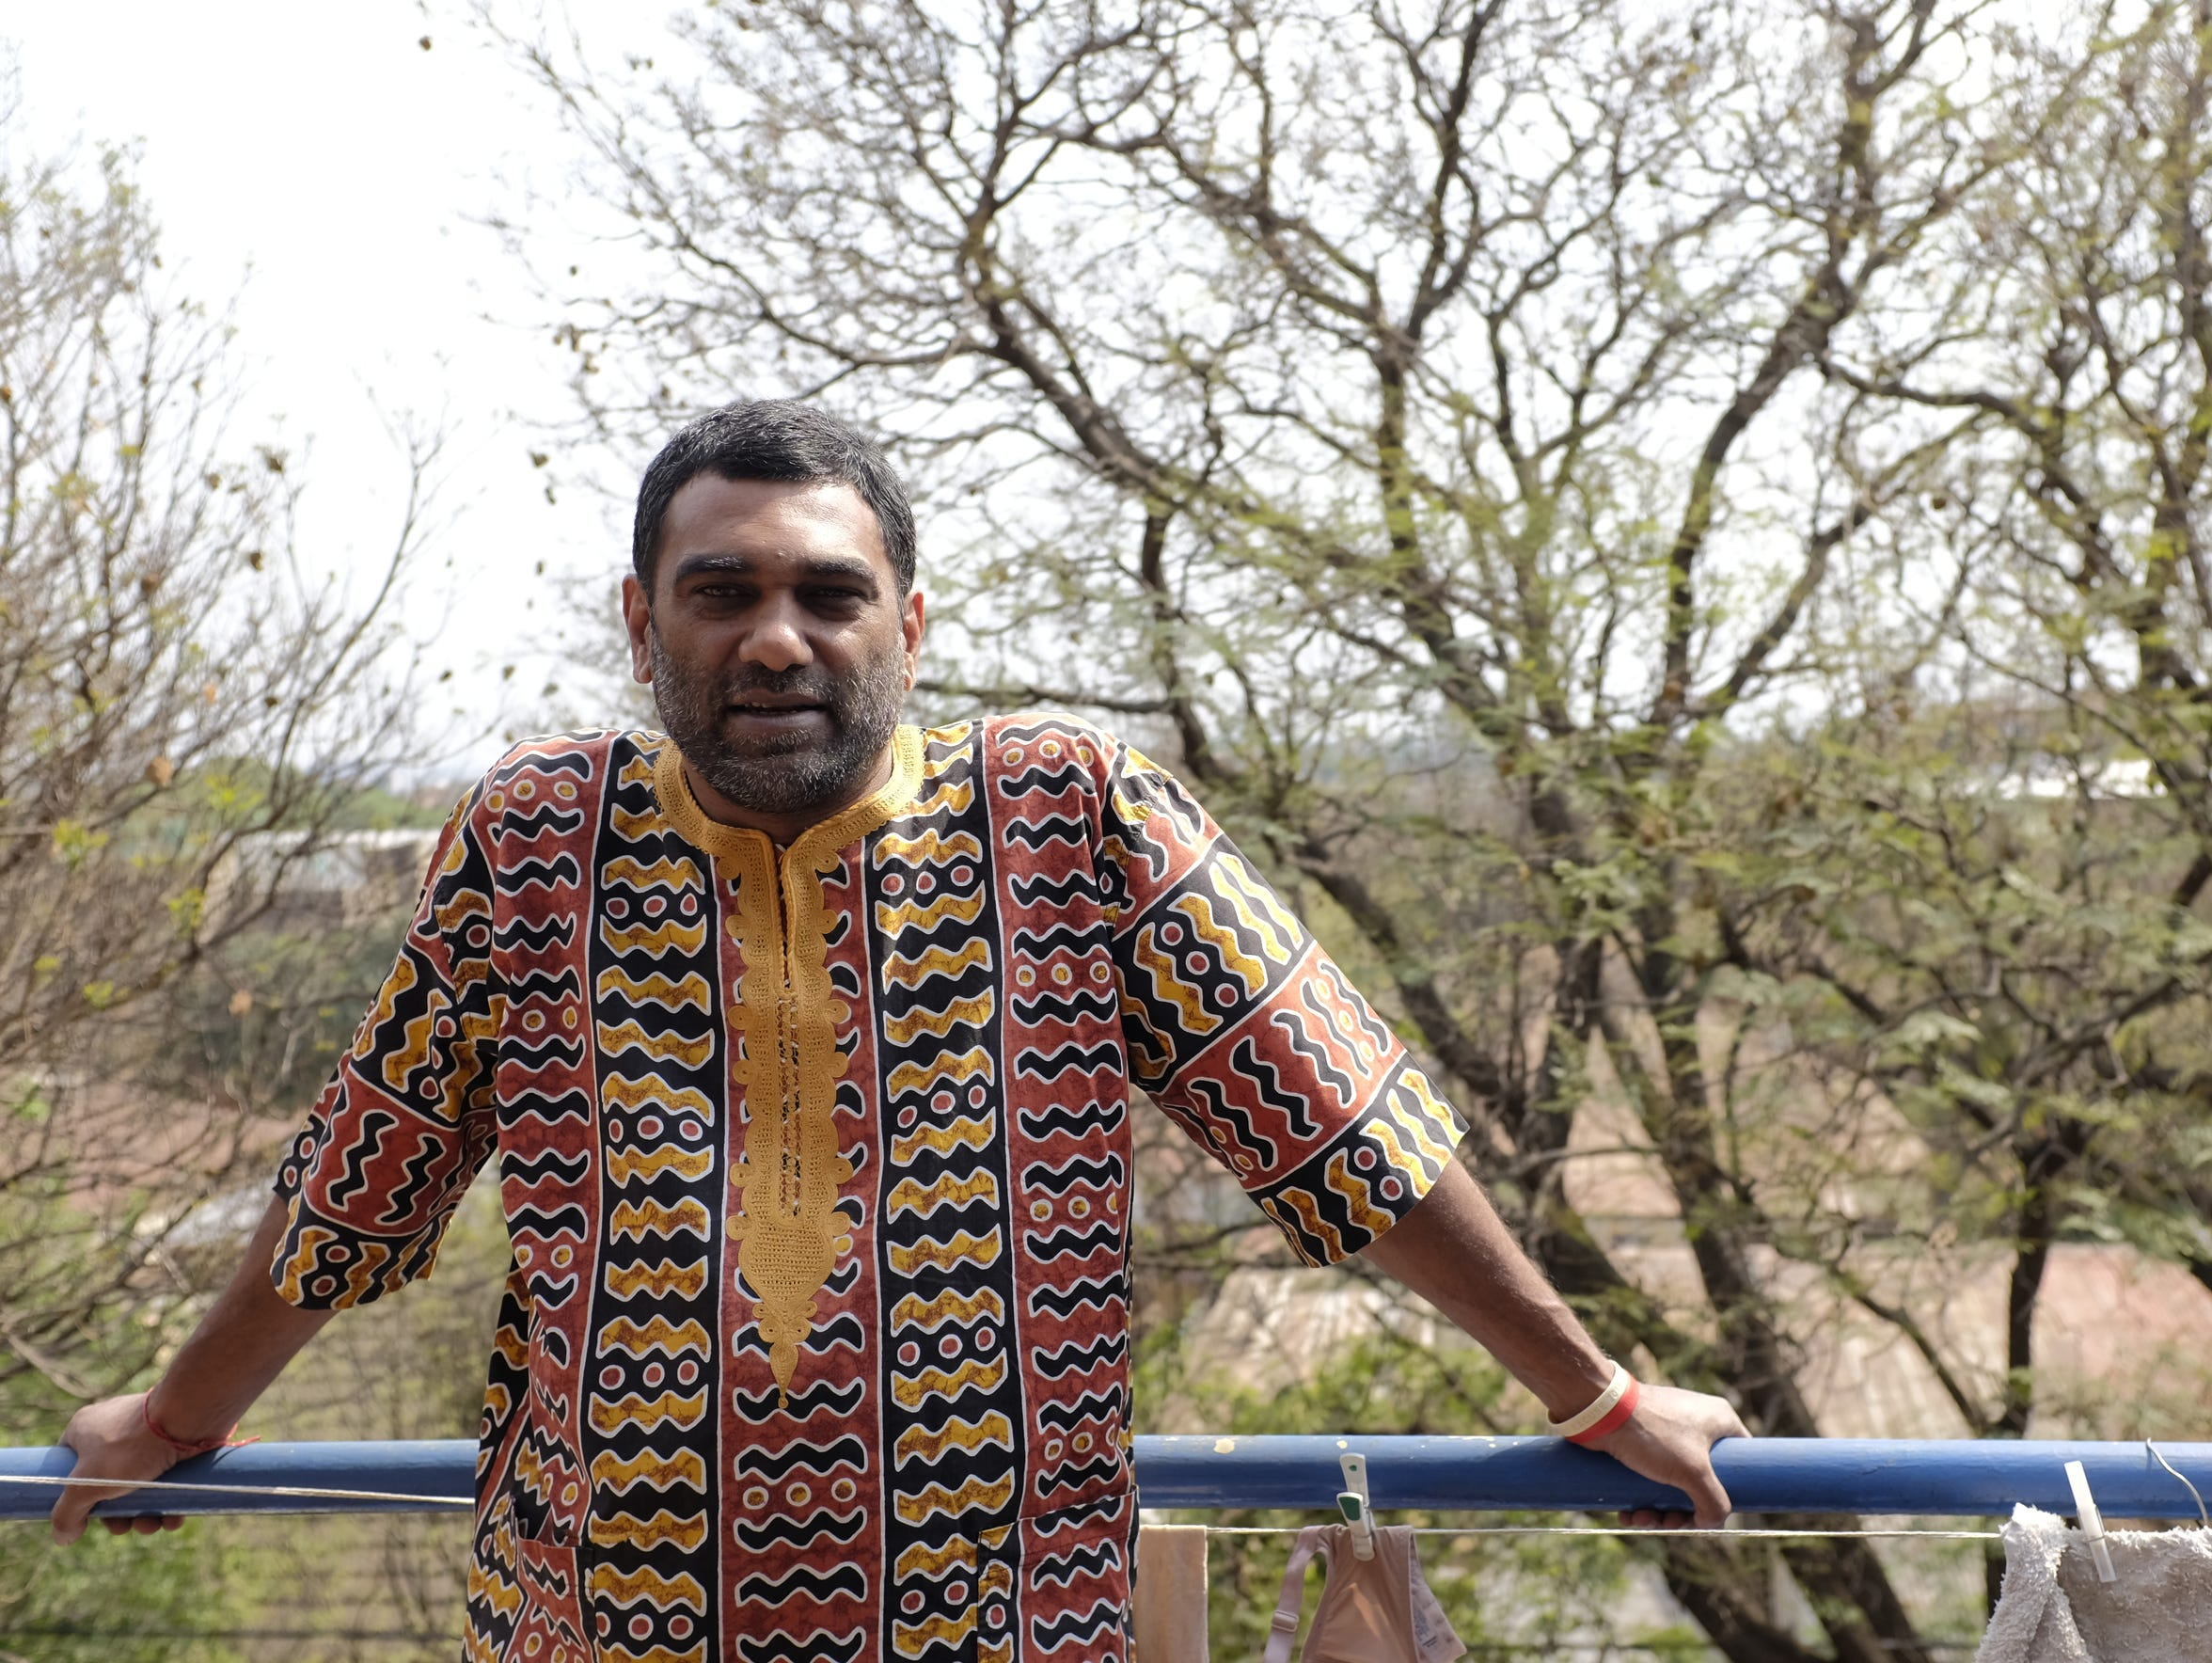 Kumi Naidoo, a former director at Greenpeace and the